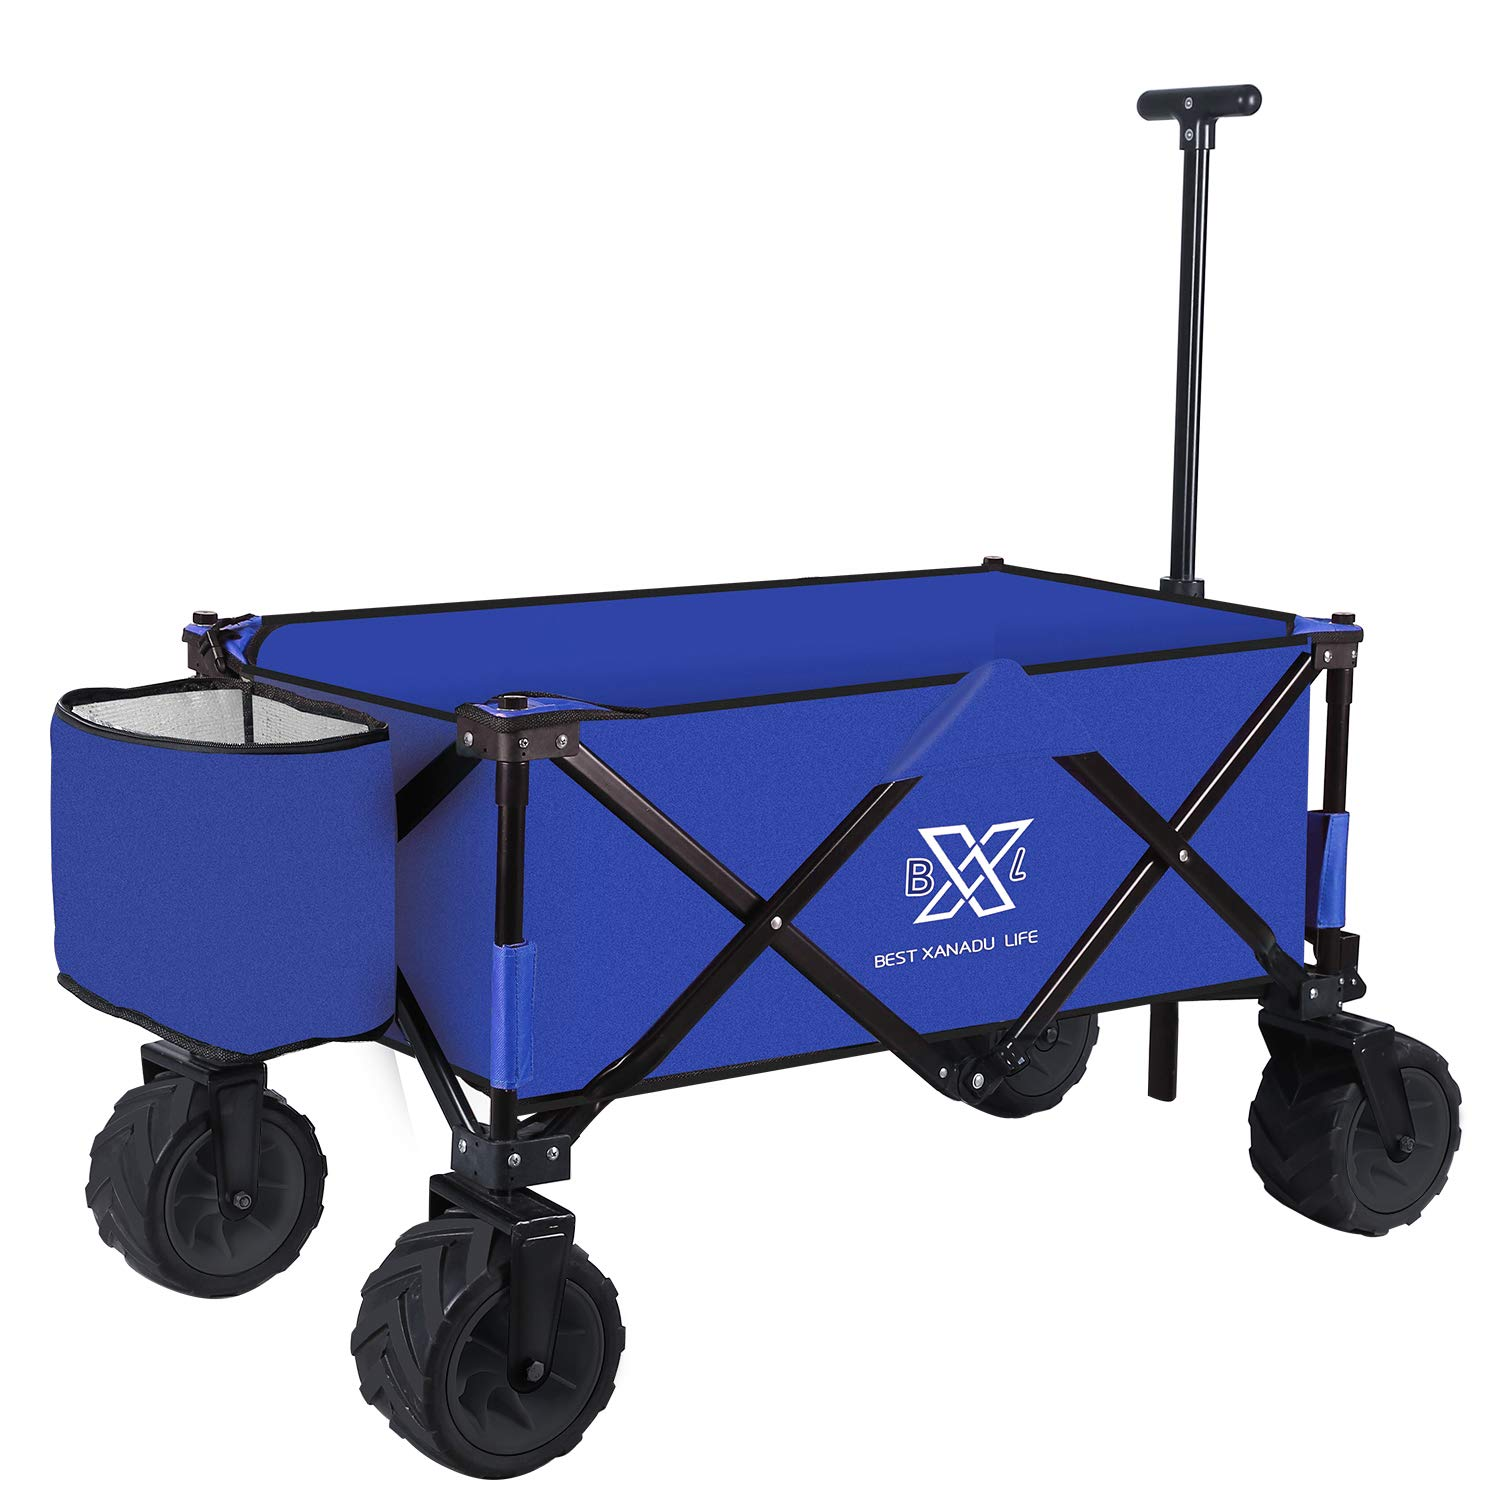 BXL Heavy Duty Collapsible Folding Garden Cart Utility Wagon for Shopping Outdoors (Blue) by BXL